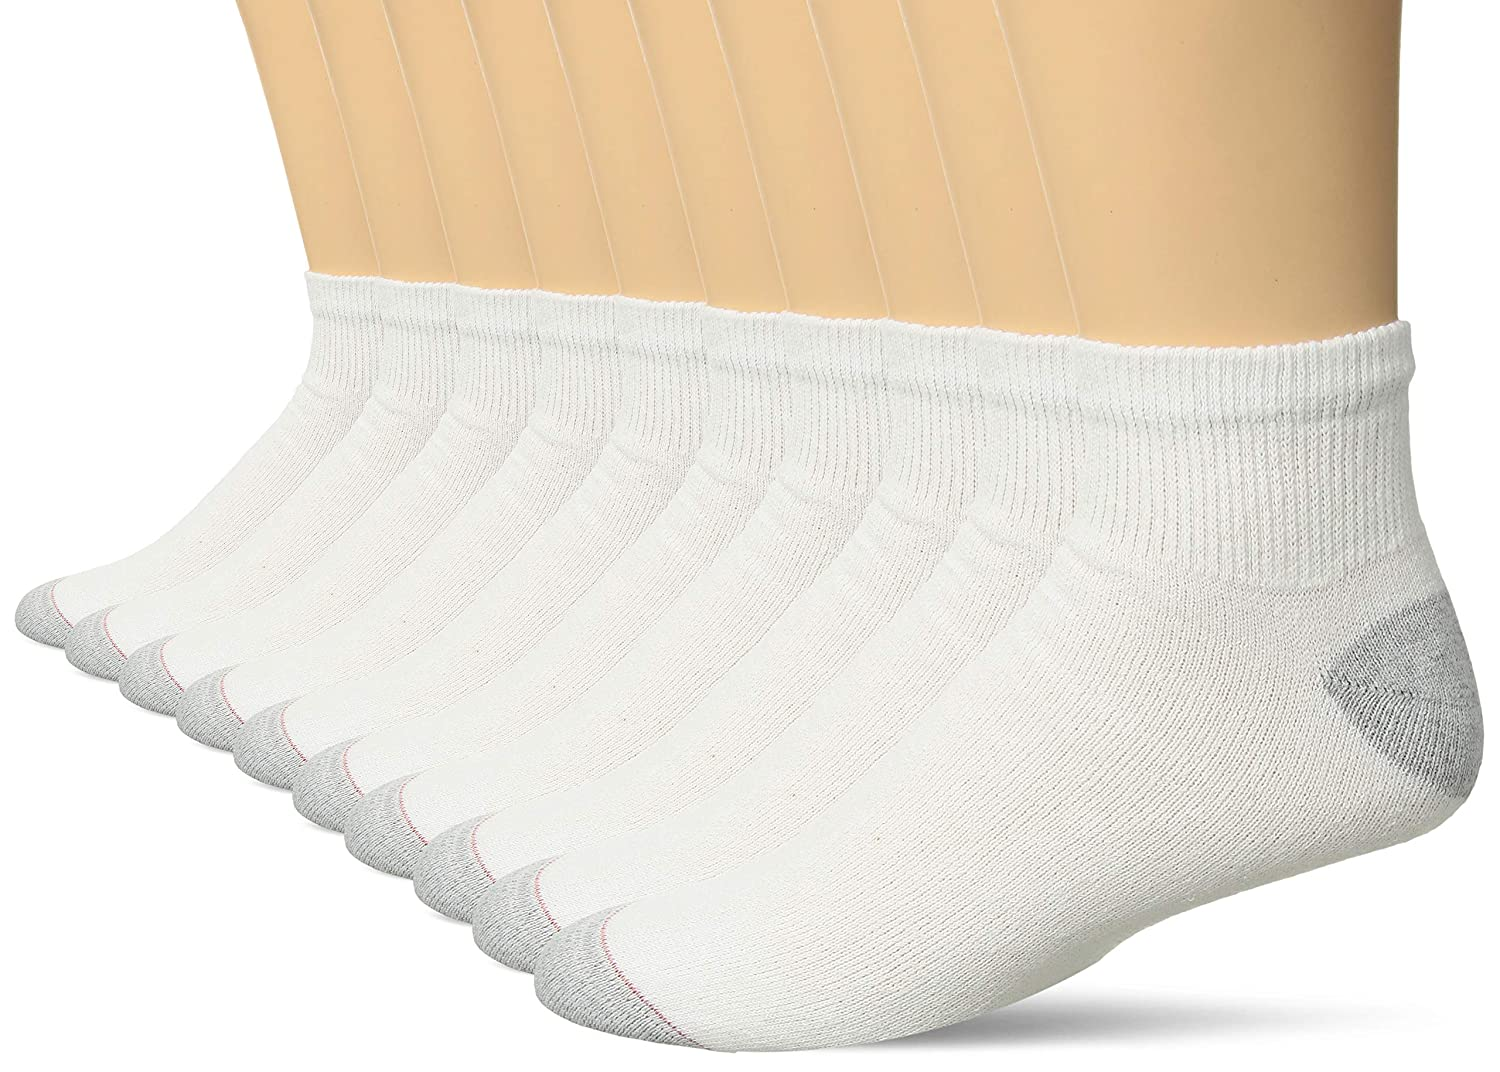 Hanes Boys Classics Ankle Socks Pack of 12